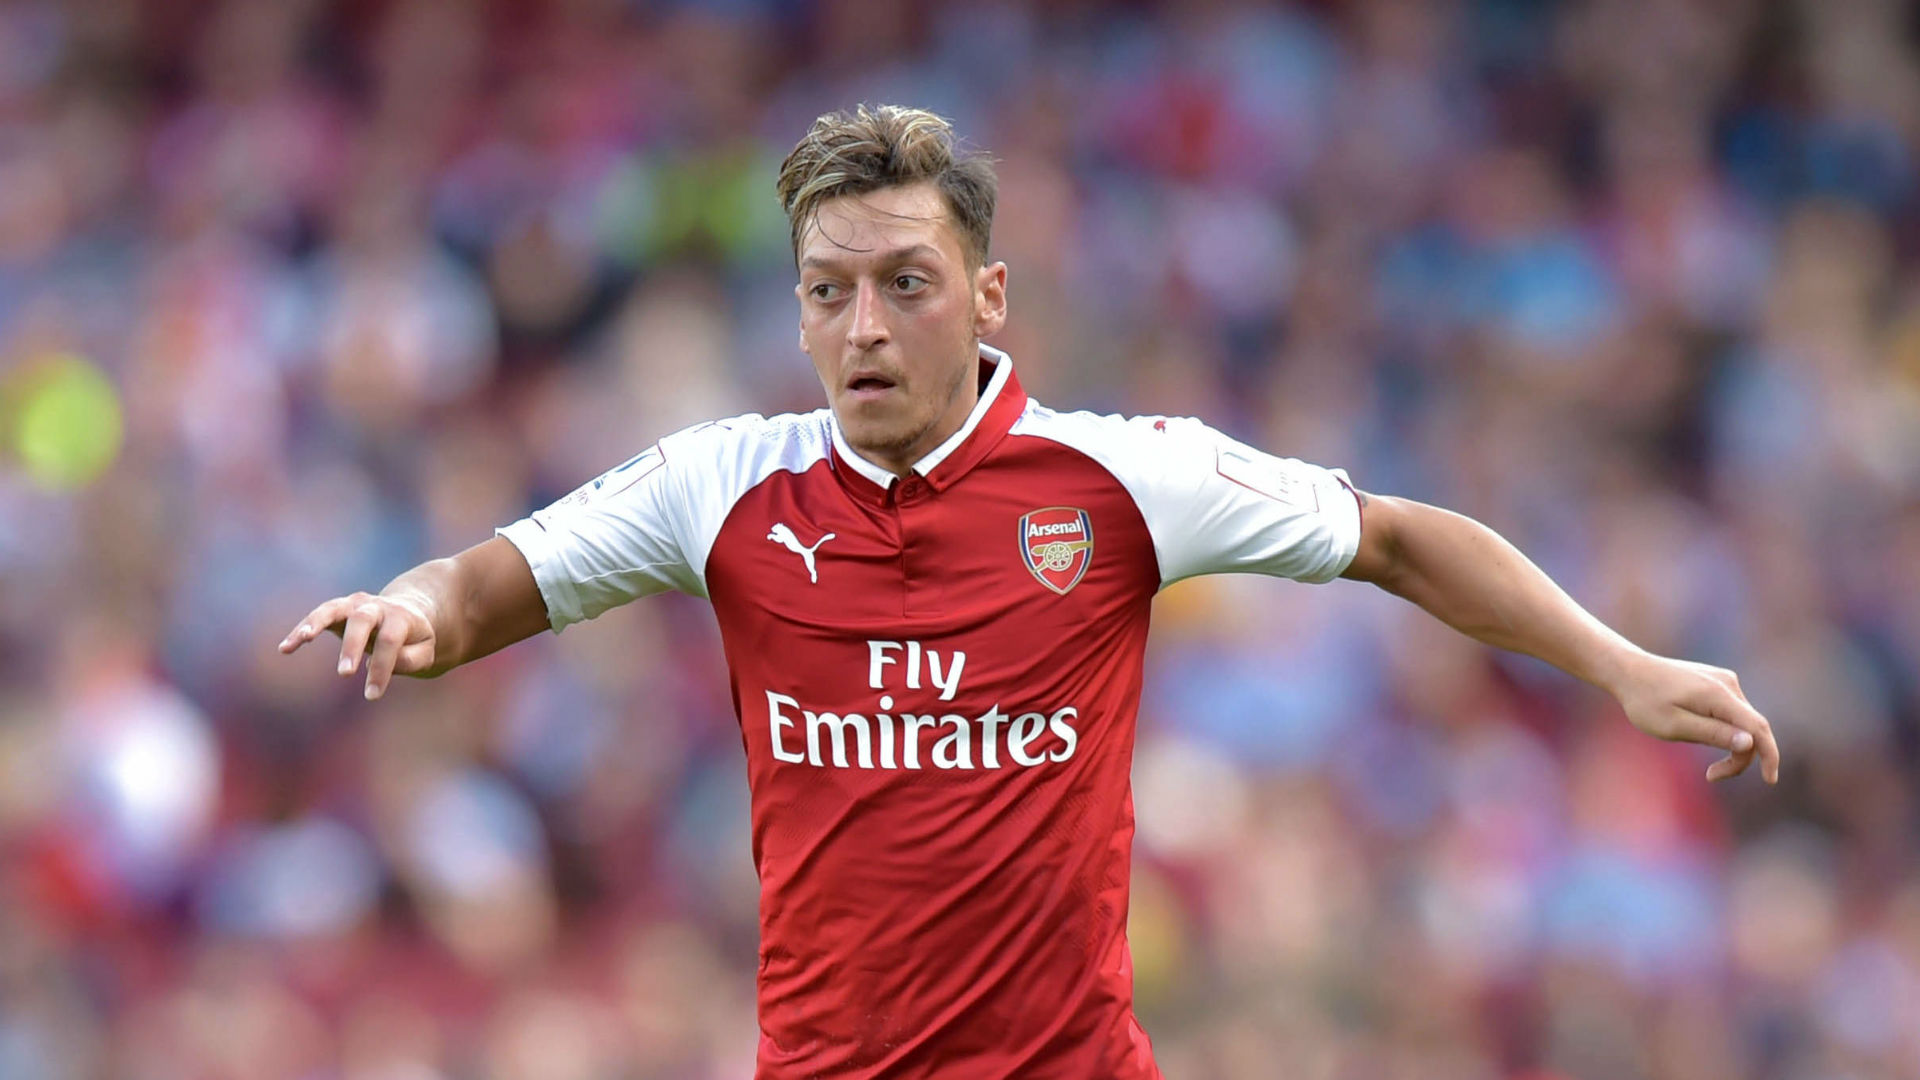 Mesut Ozil considering Arsenal exit with Barca and Man United